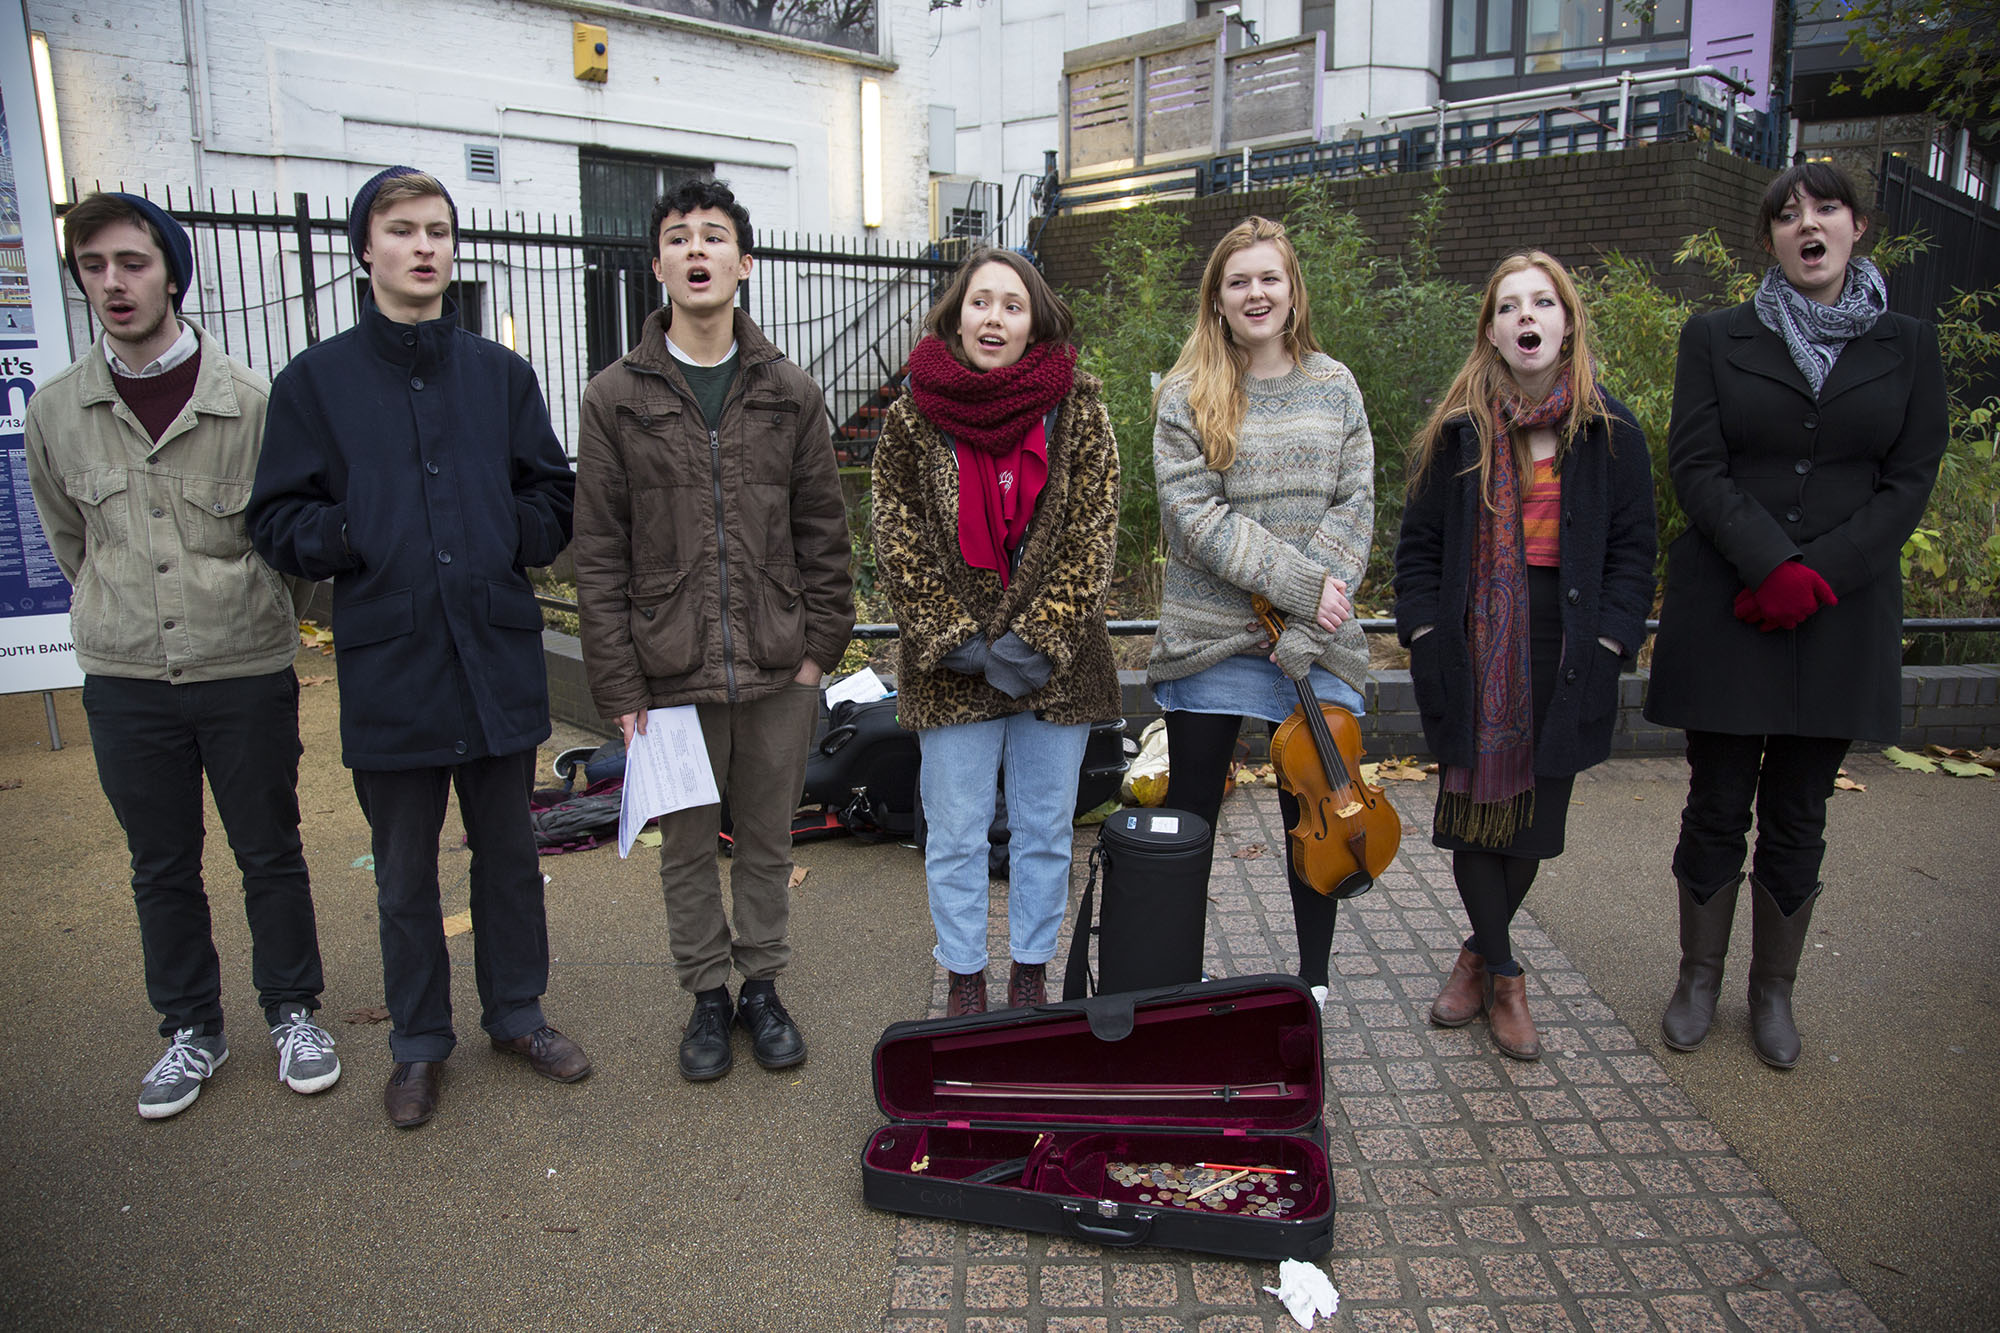 Young student Christmas carol singers busking on the South Bank.